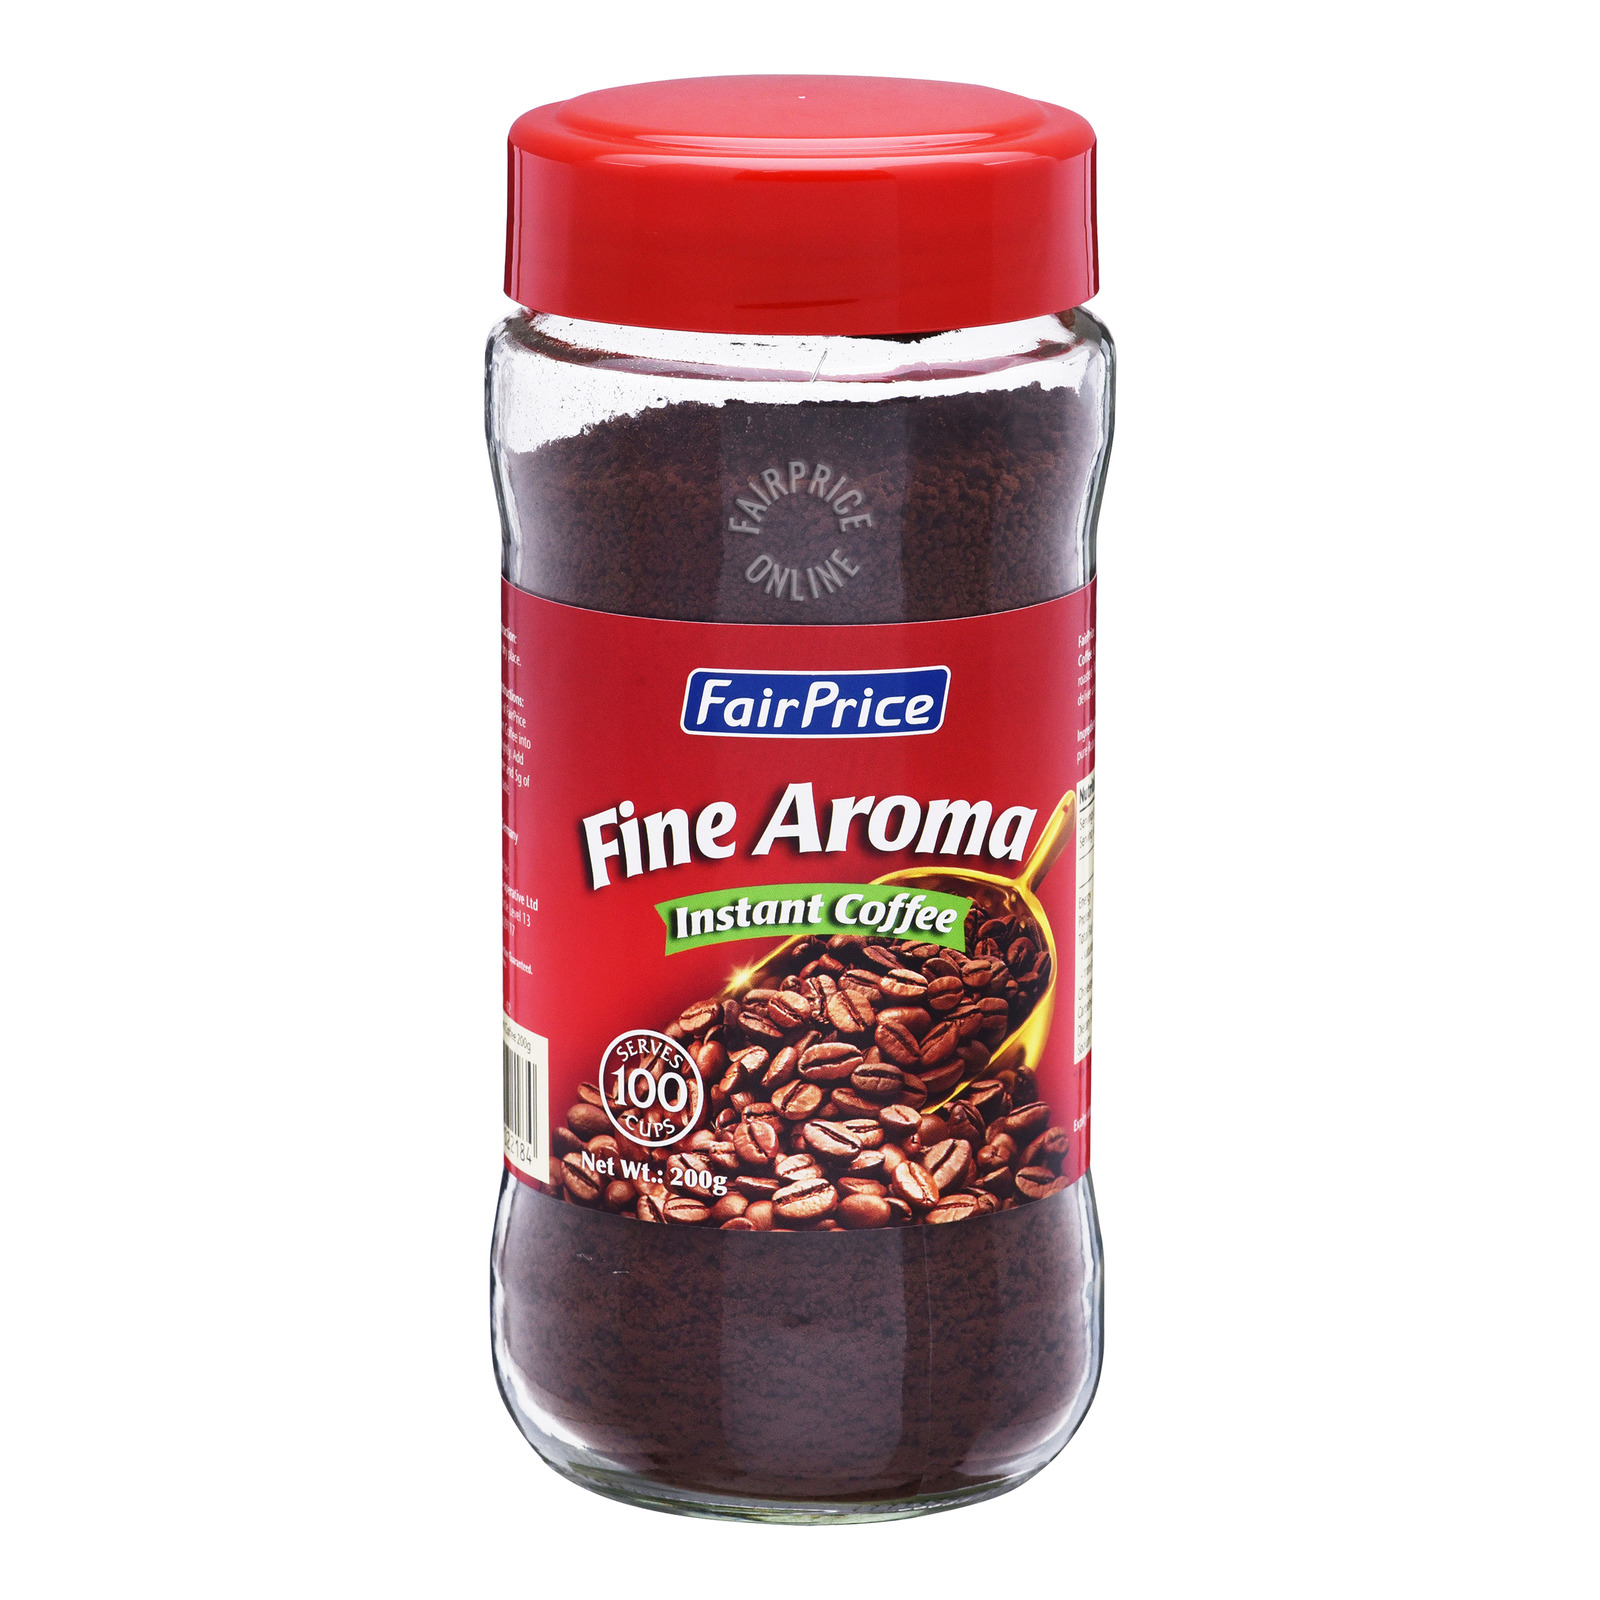 FairPrice Instant Coffee Powder Jar - Fine Aroma